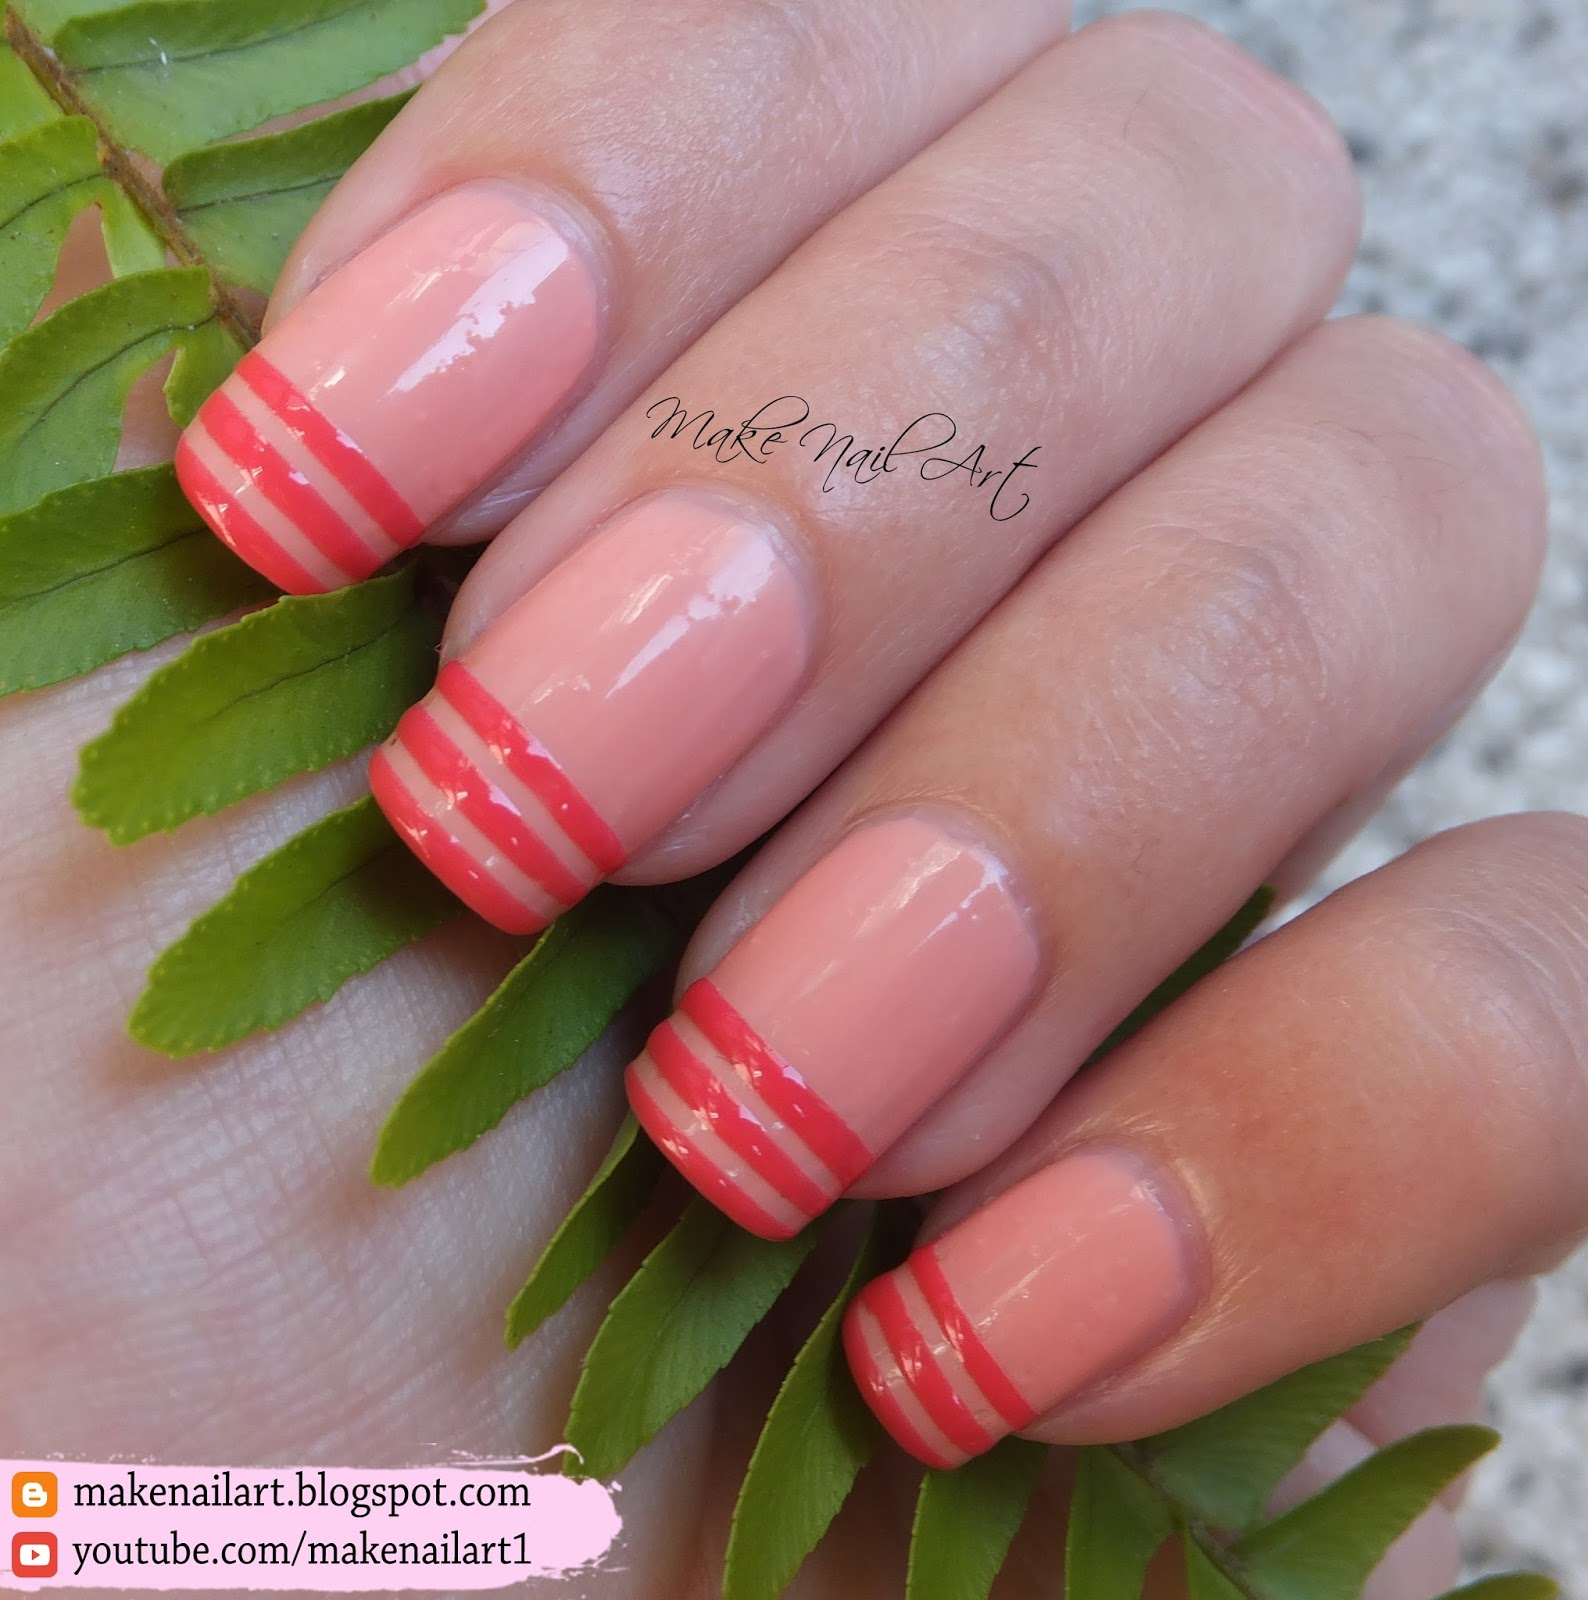 Make Nail Art French Manicure With Stripes Nail Art Design 31dc2016